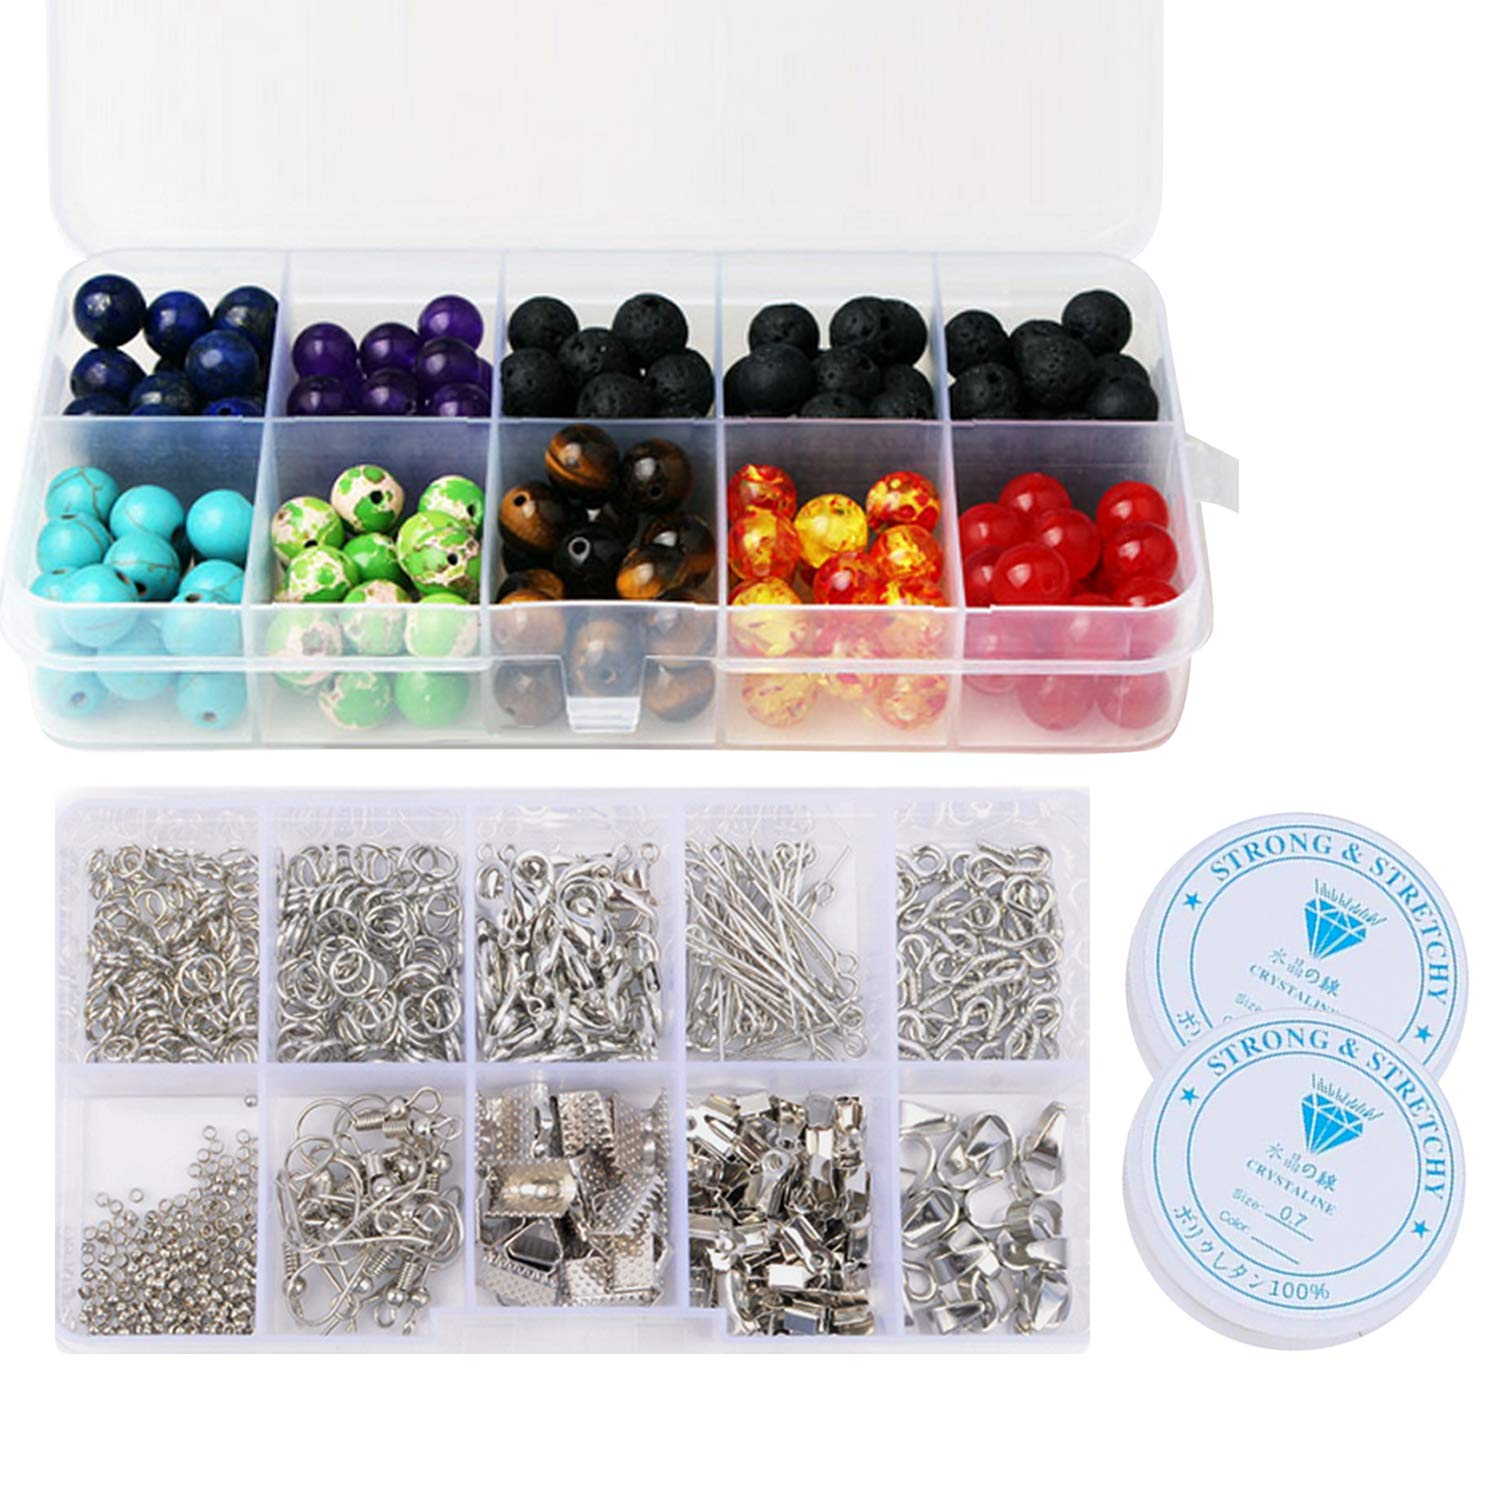 640PCS DIY Craft Jewelry Making Finding Tool Kit with 200PCS 8mm Lava Chakra Beads 2 Roll Crystal String for Bracelet Necklace Earring Migavan